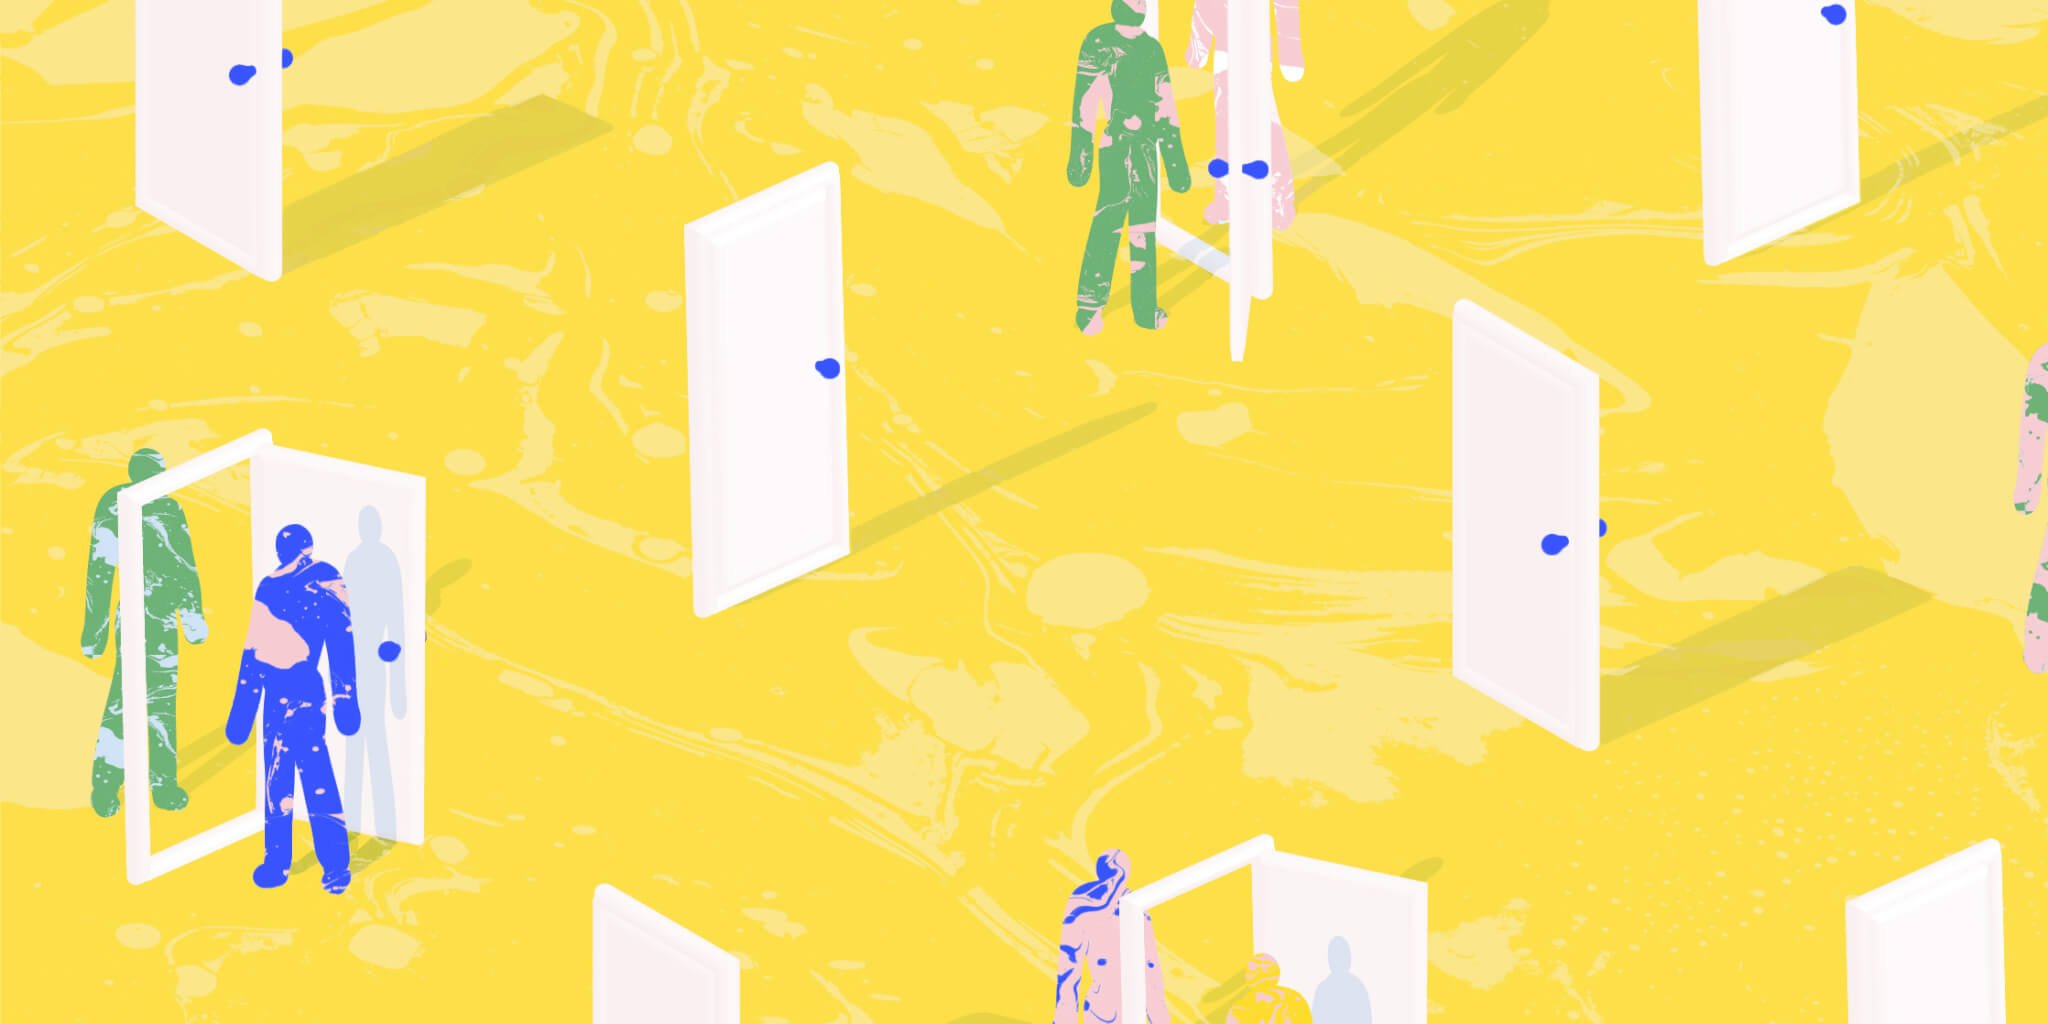 Illustration with yellow background and figures walking through doorways